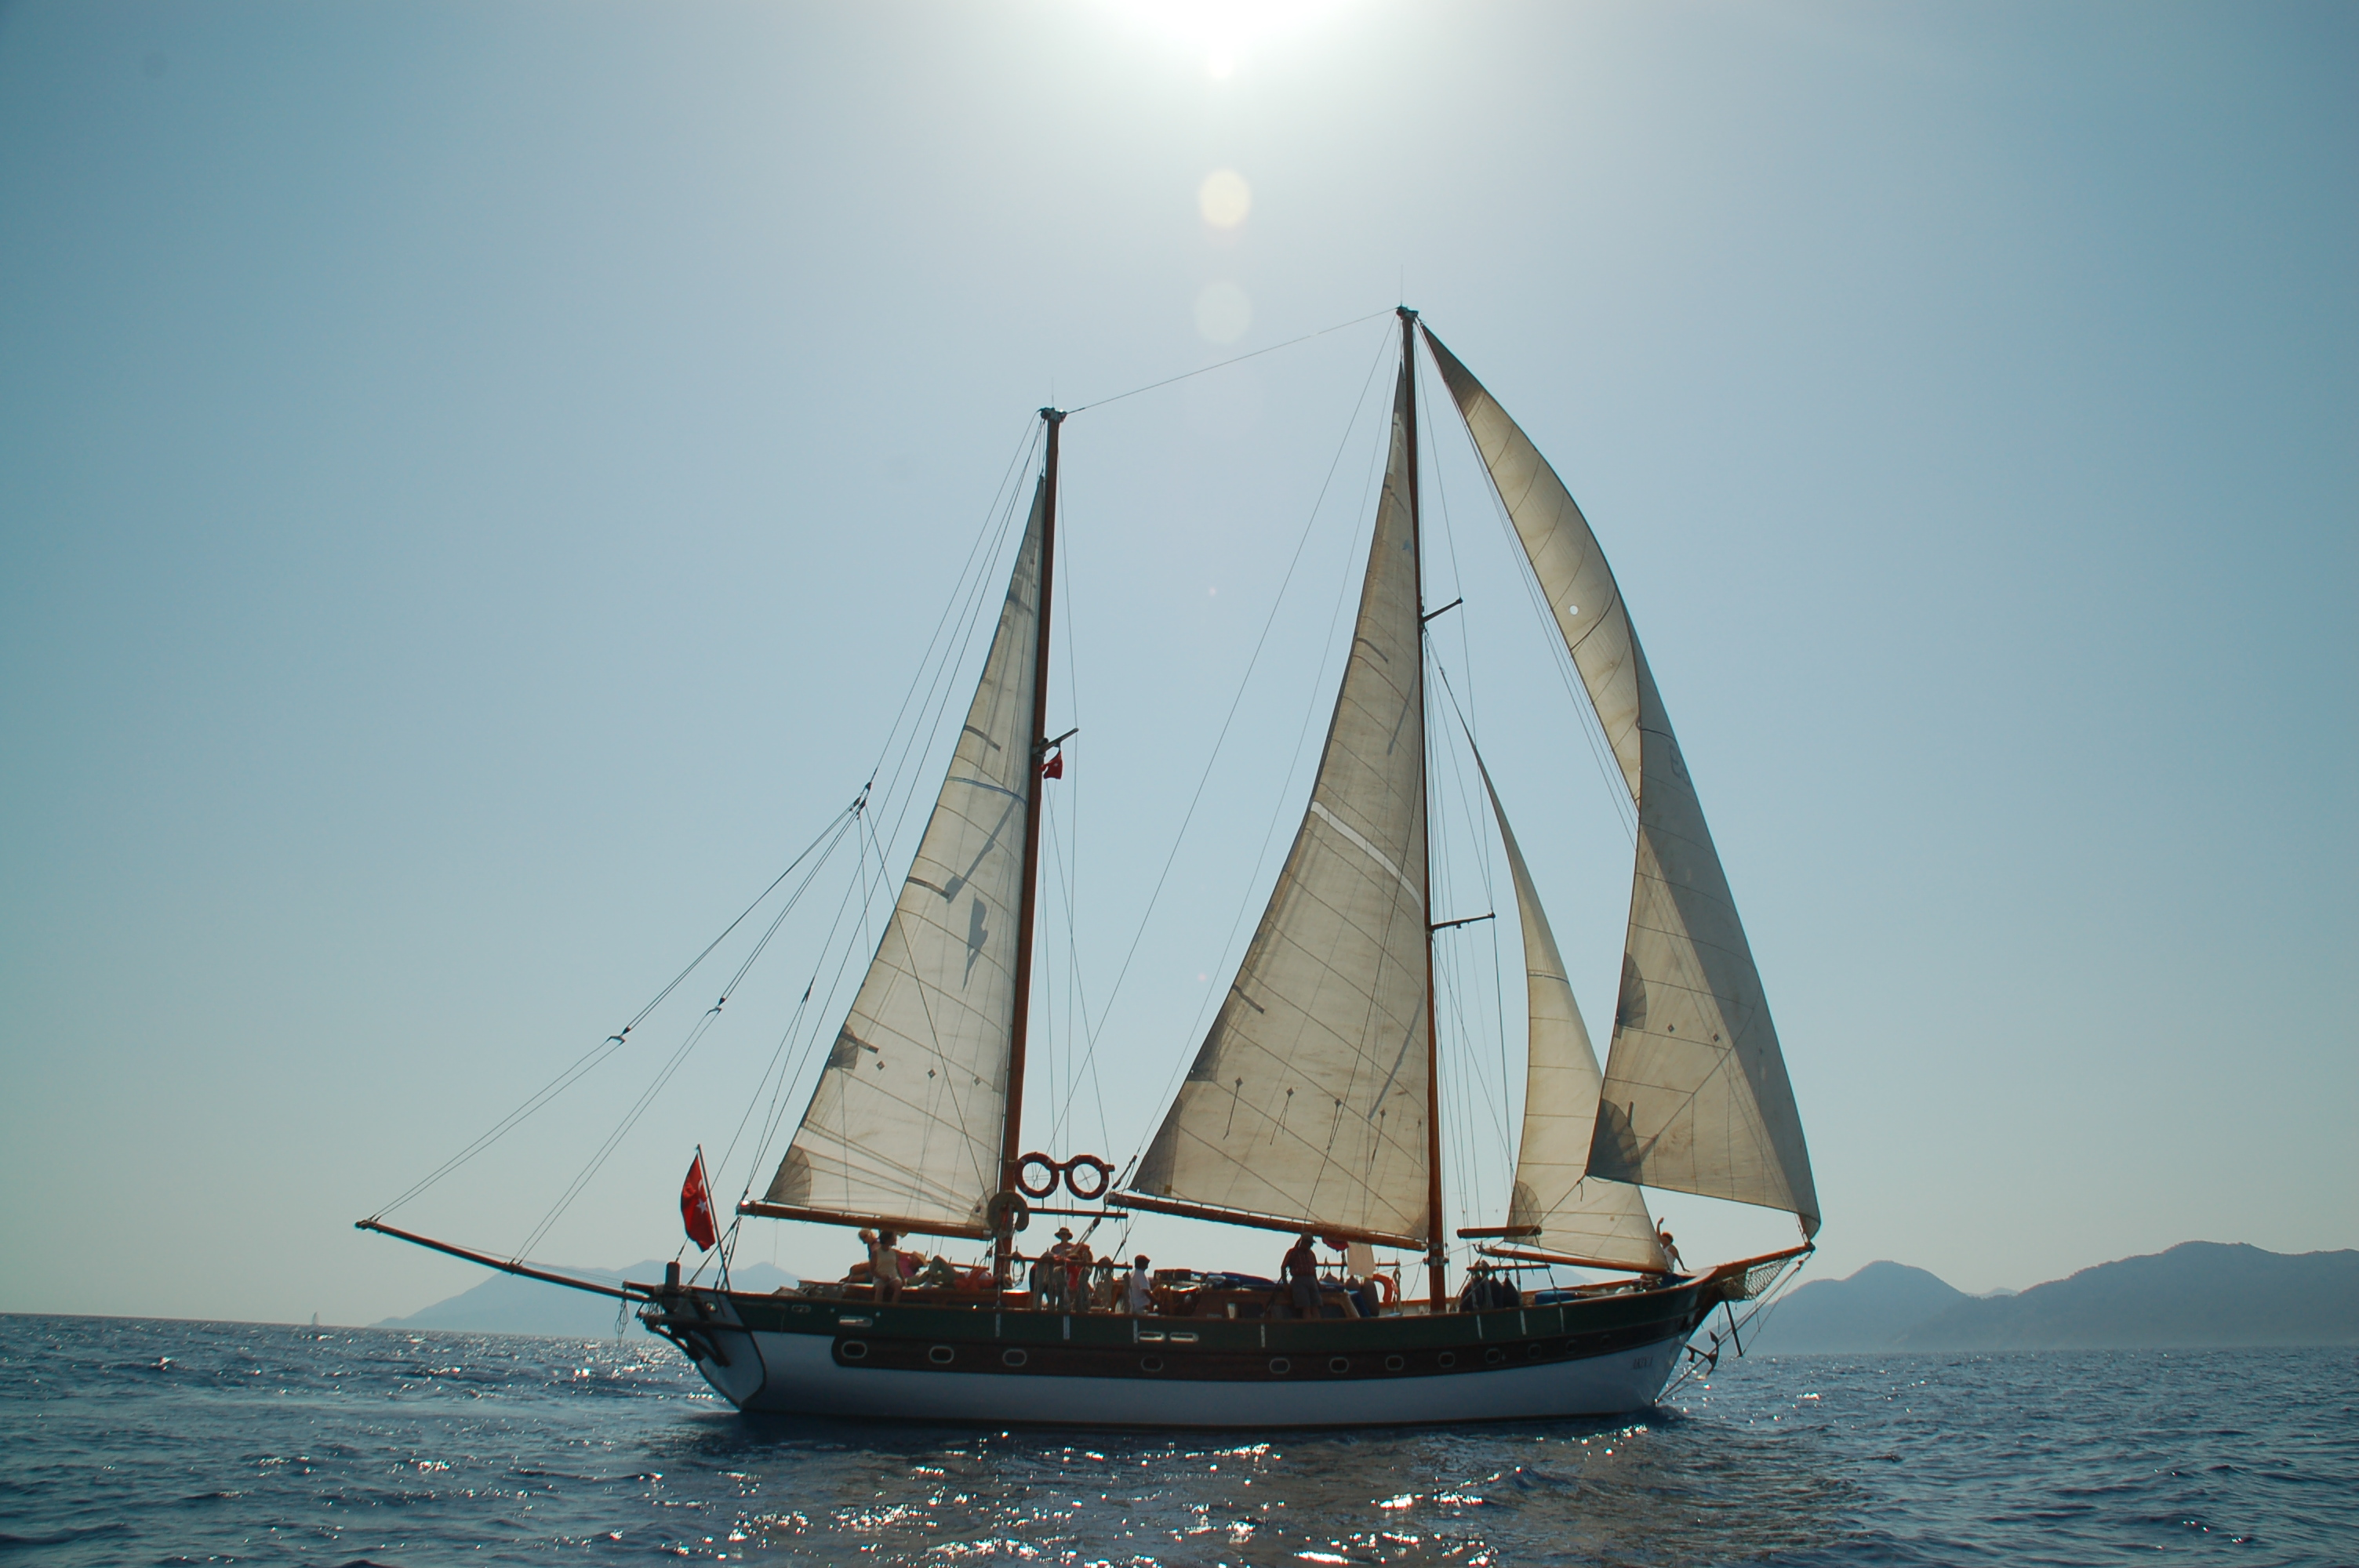 Under Sail, Turkey